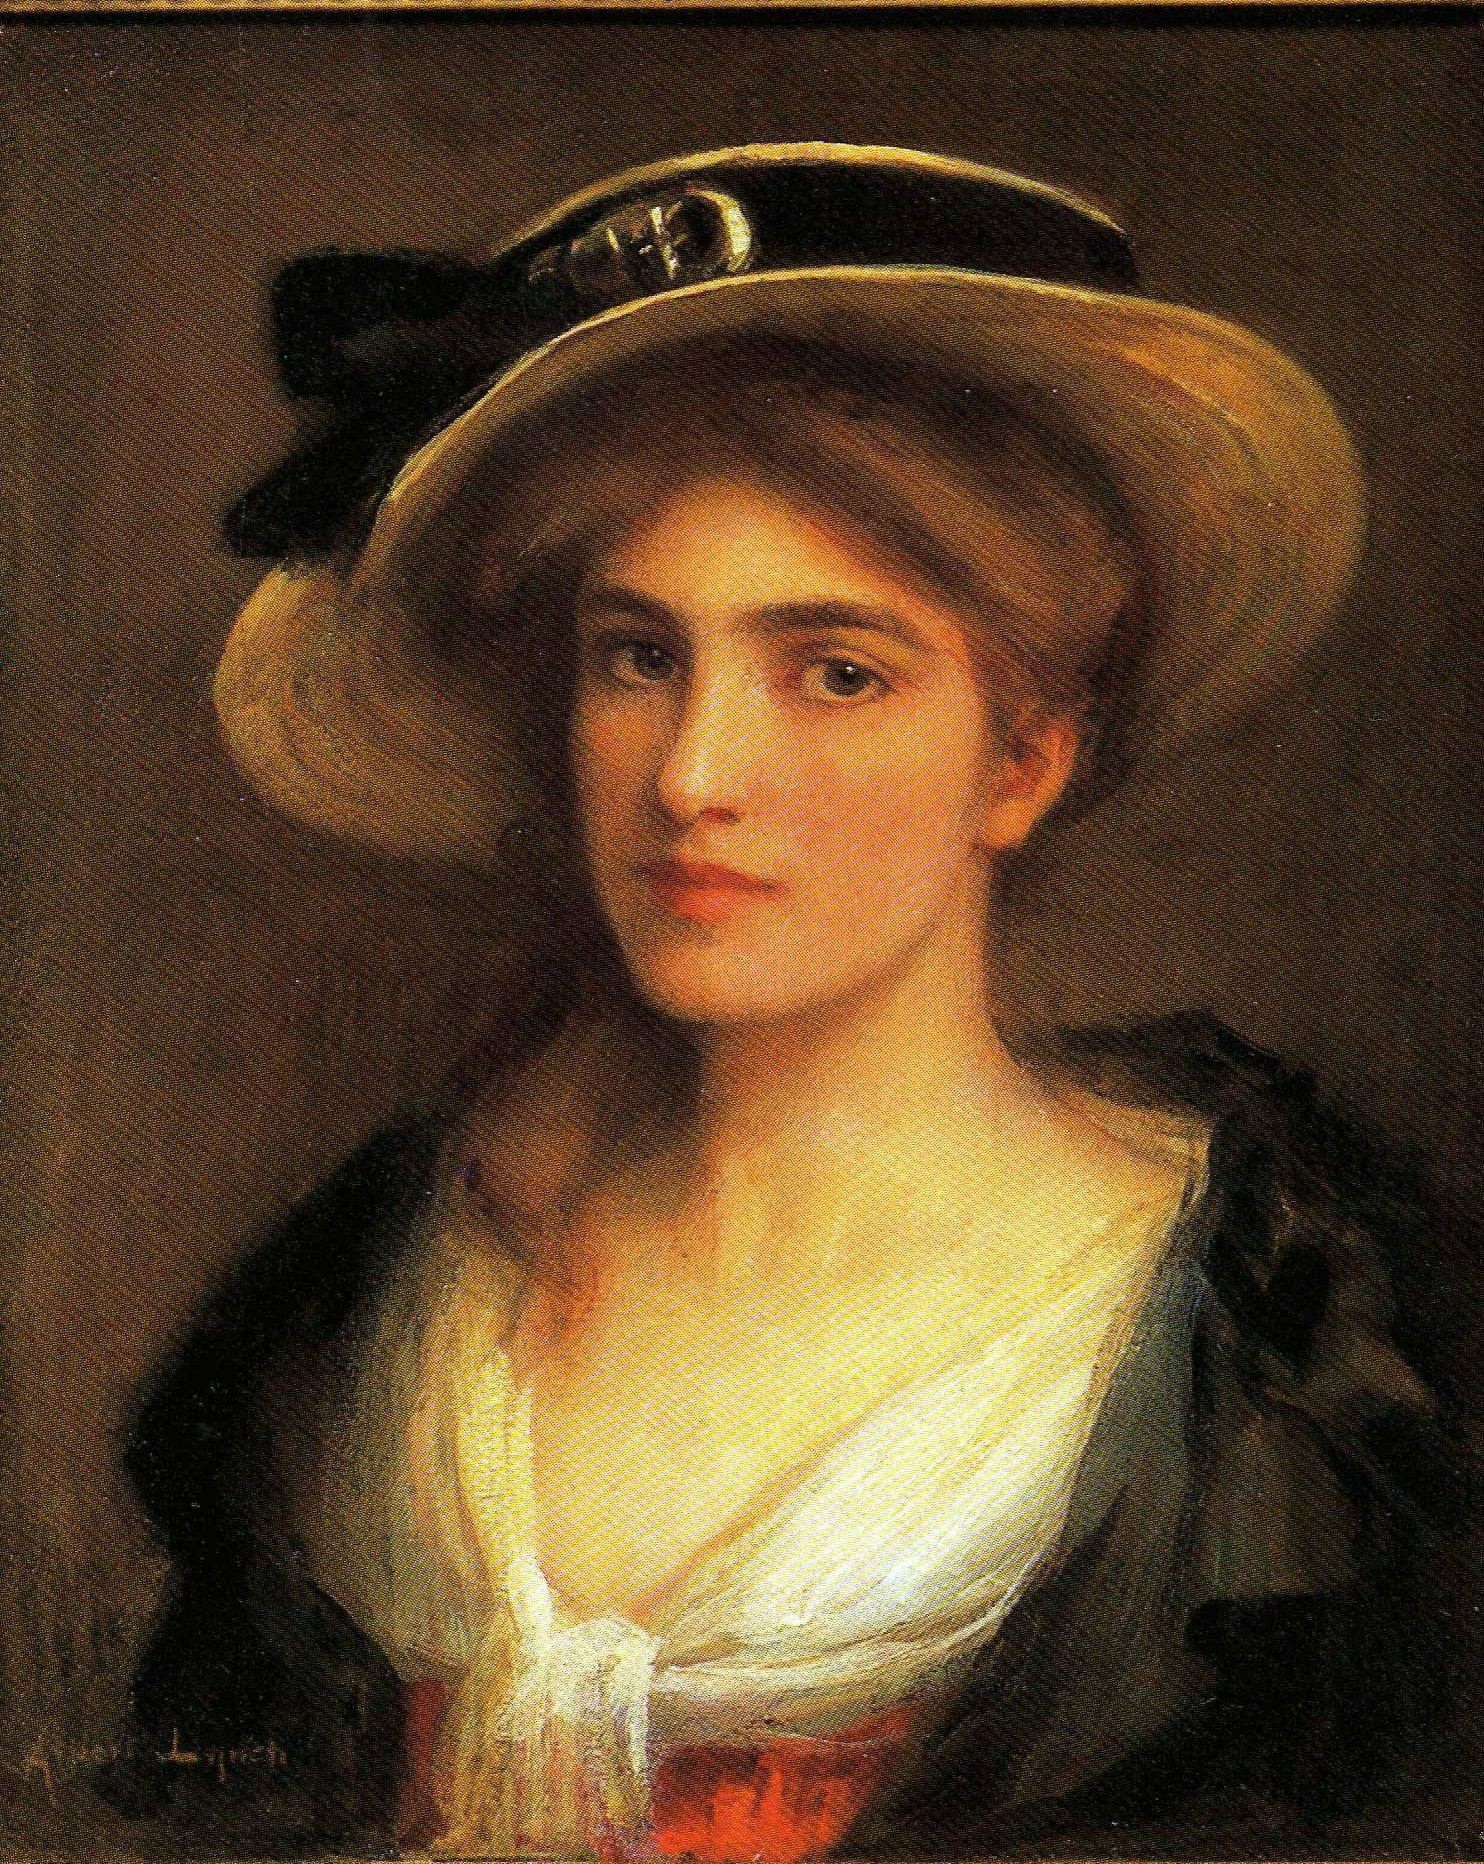 https://upload.wikimedia.org/wikipedia/commons/6/62/Lynch_Albert_-_Jeune_femme_au_chapeau.jpg